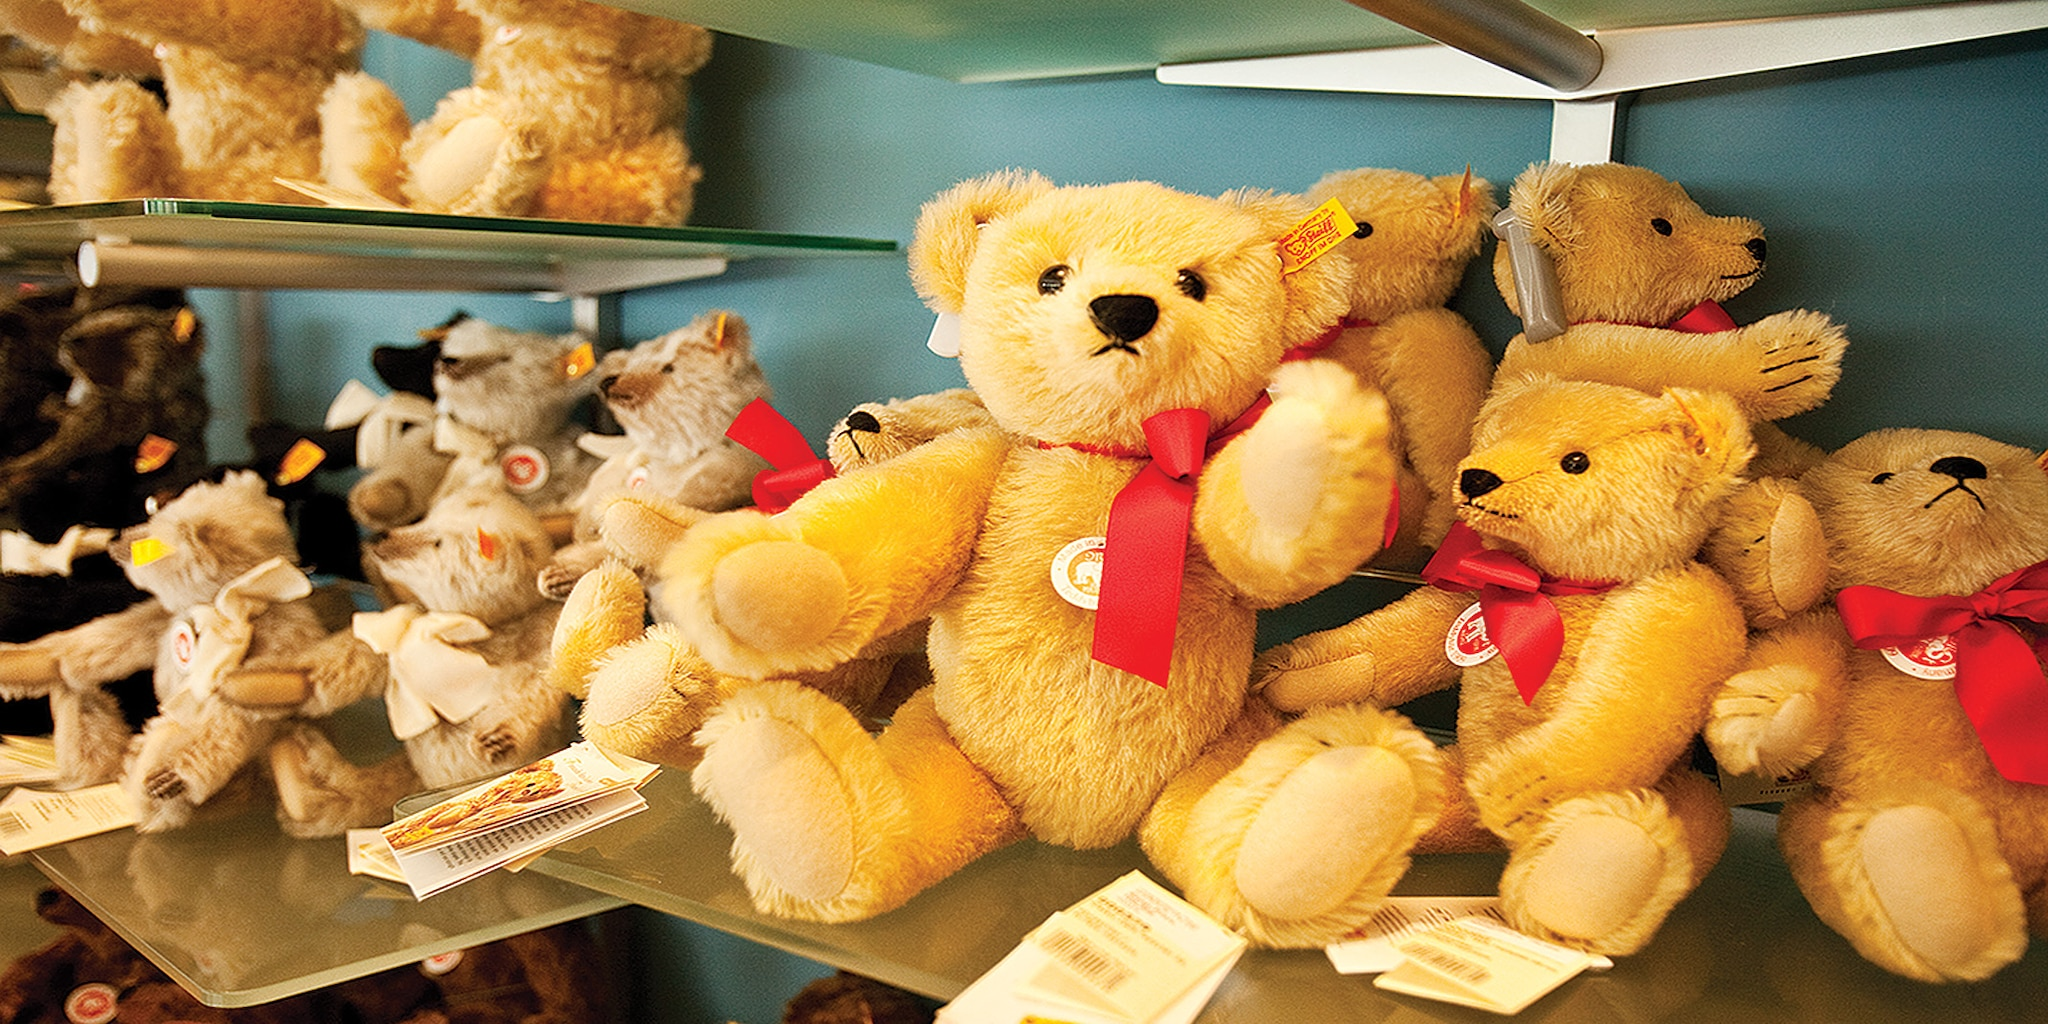 Visit the Stieiff bear factory on the German vacation